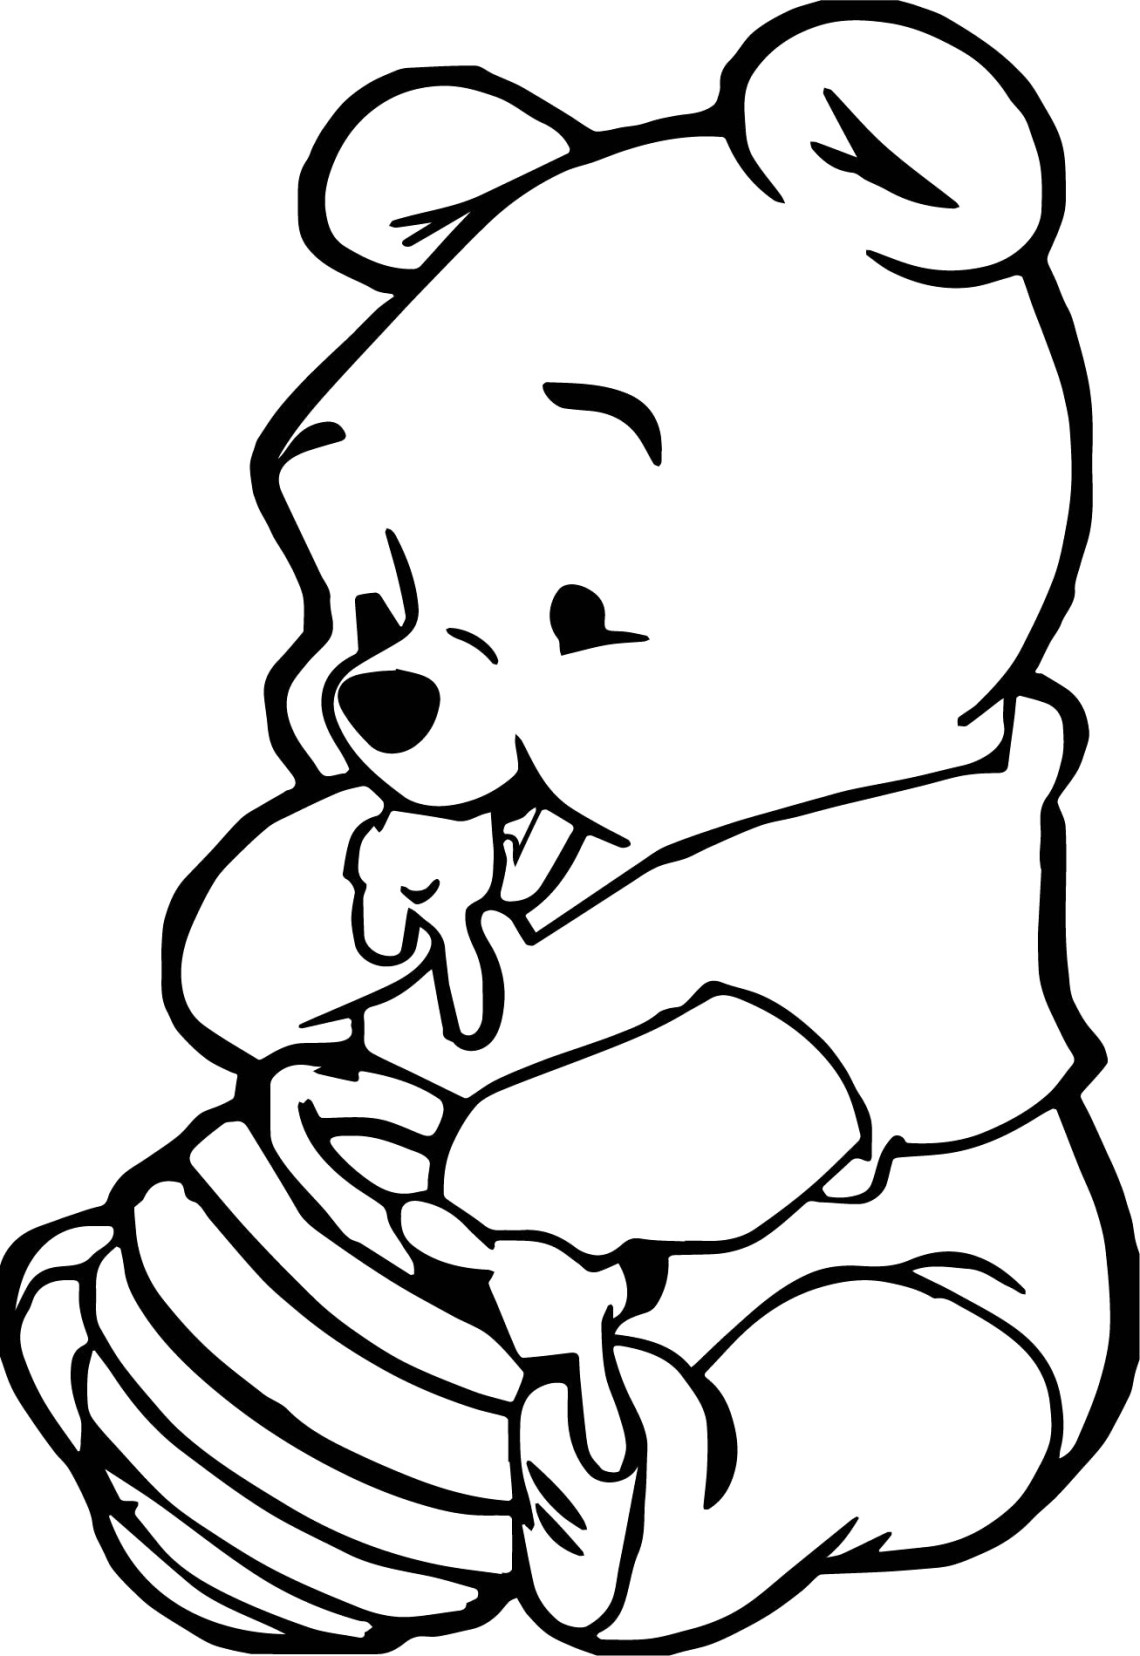 Baby Animal Coloring Pages - Best Coloring Pages For Kids | colouring pages baby animals